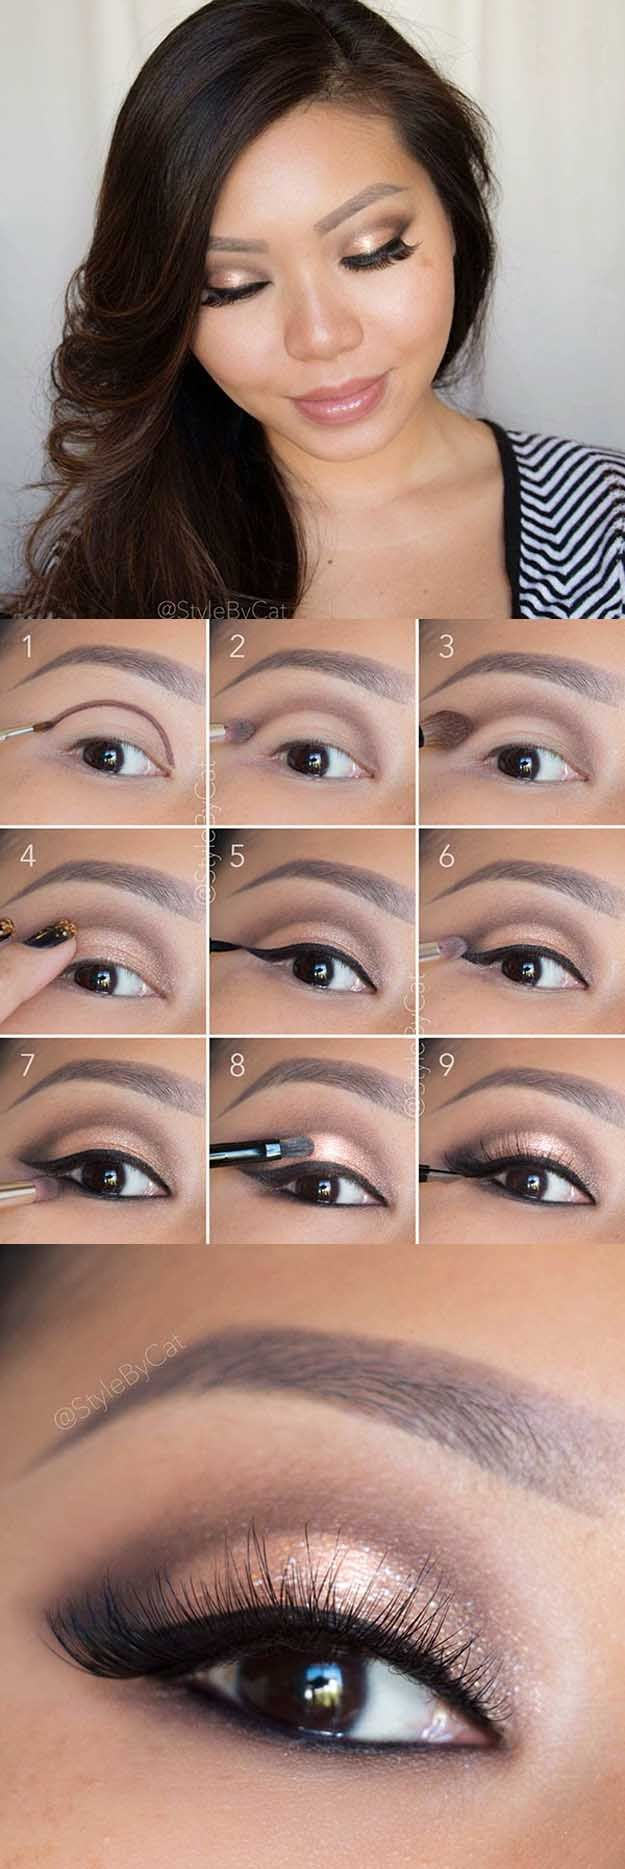 Makeup Tips For Asian Women - Soft Rose Gold Smokey Eye Tutorial- Simple Step By...